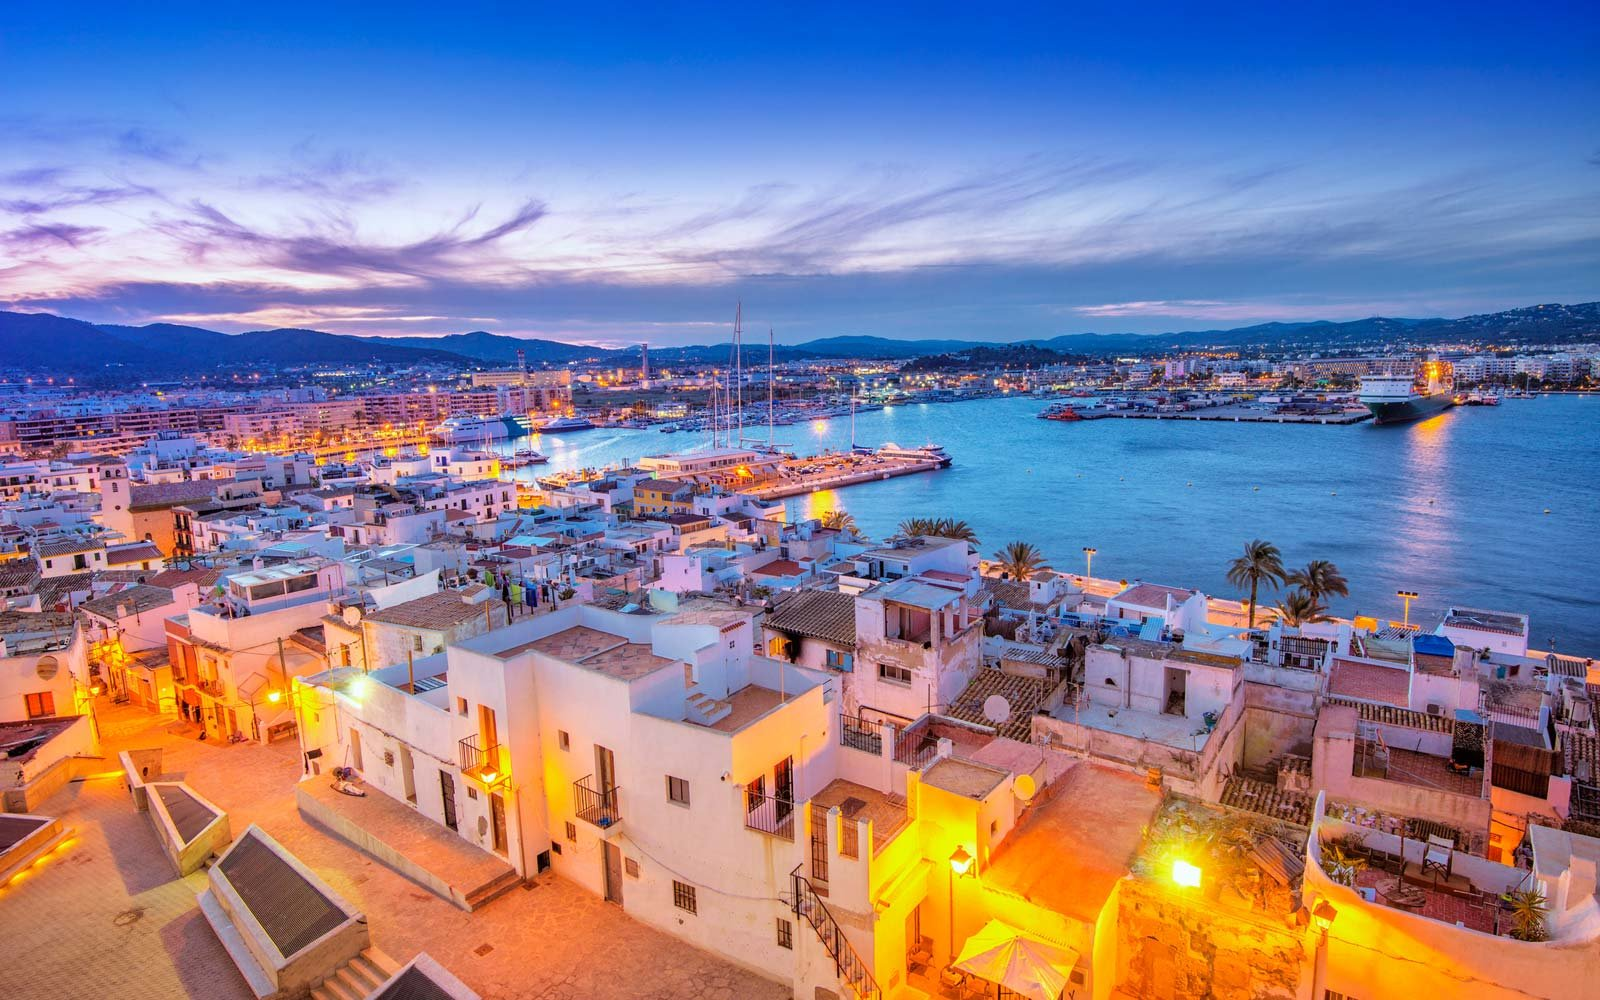 Ibiza Old Town and Harbour at dusk